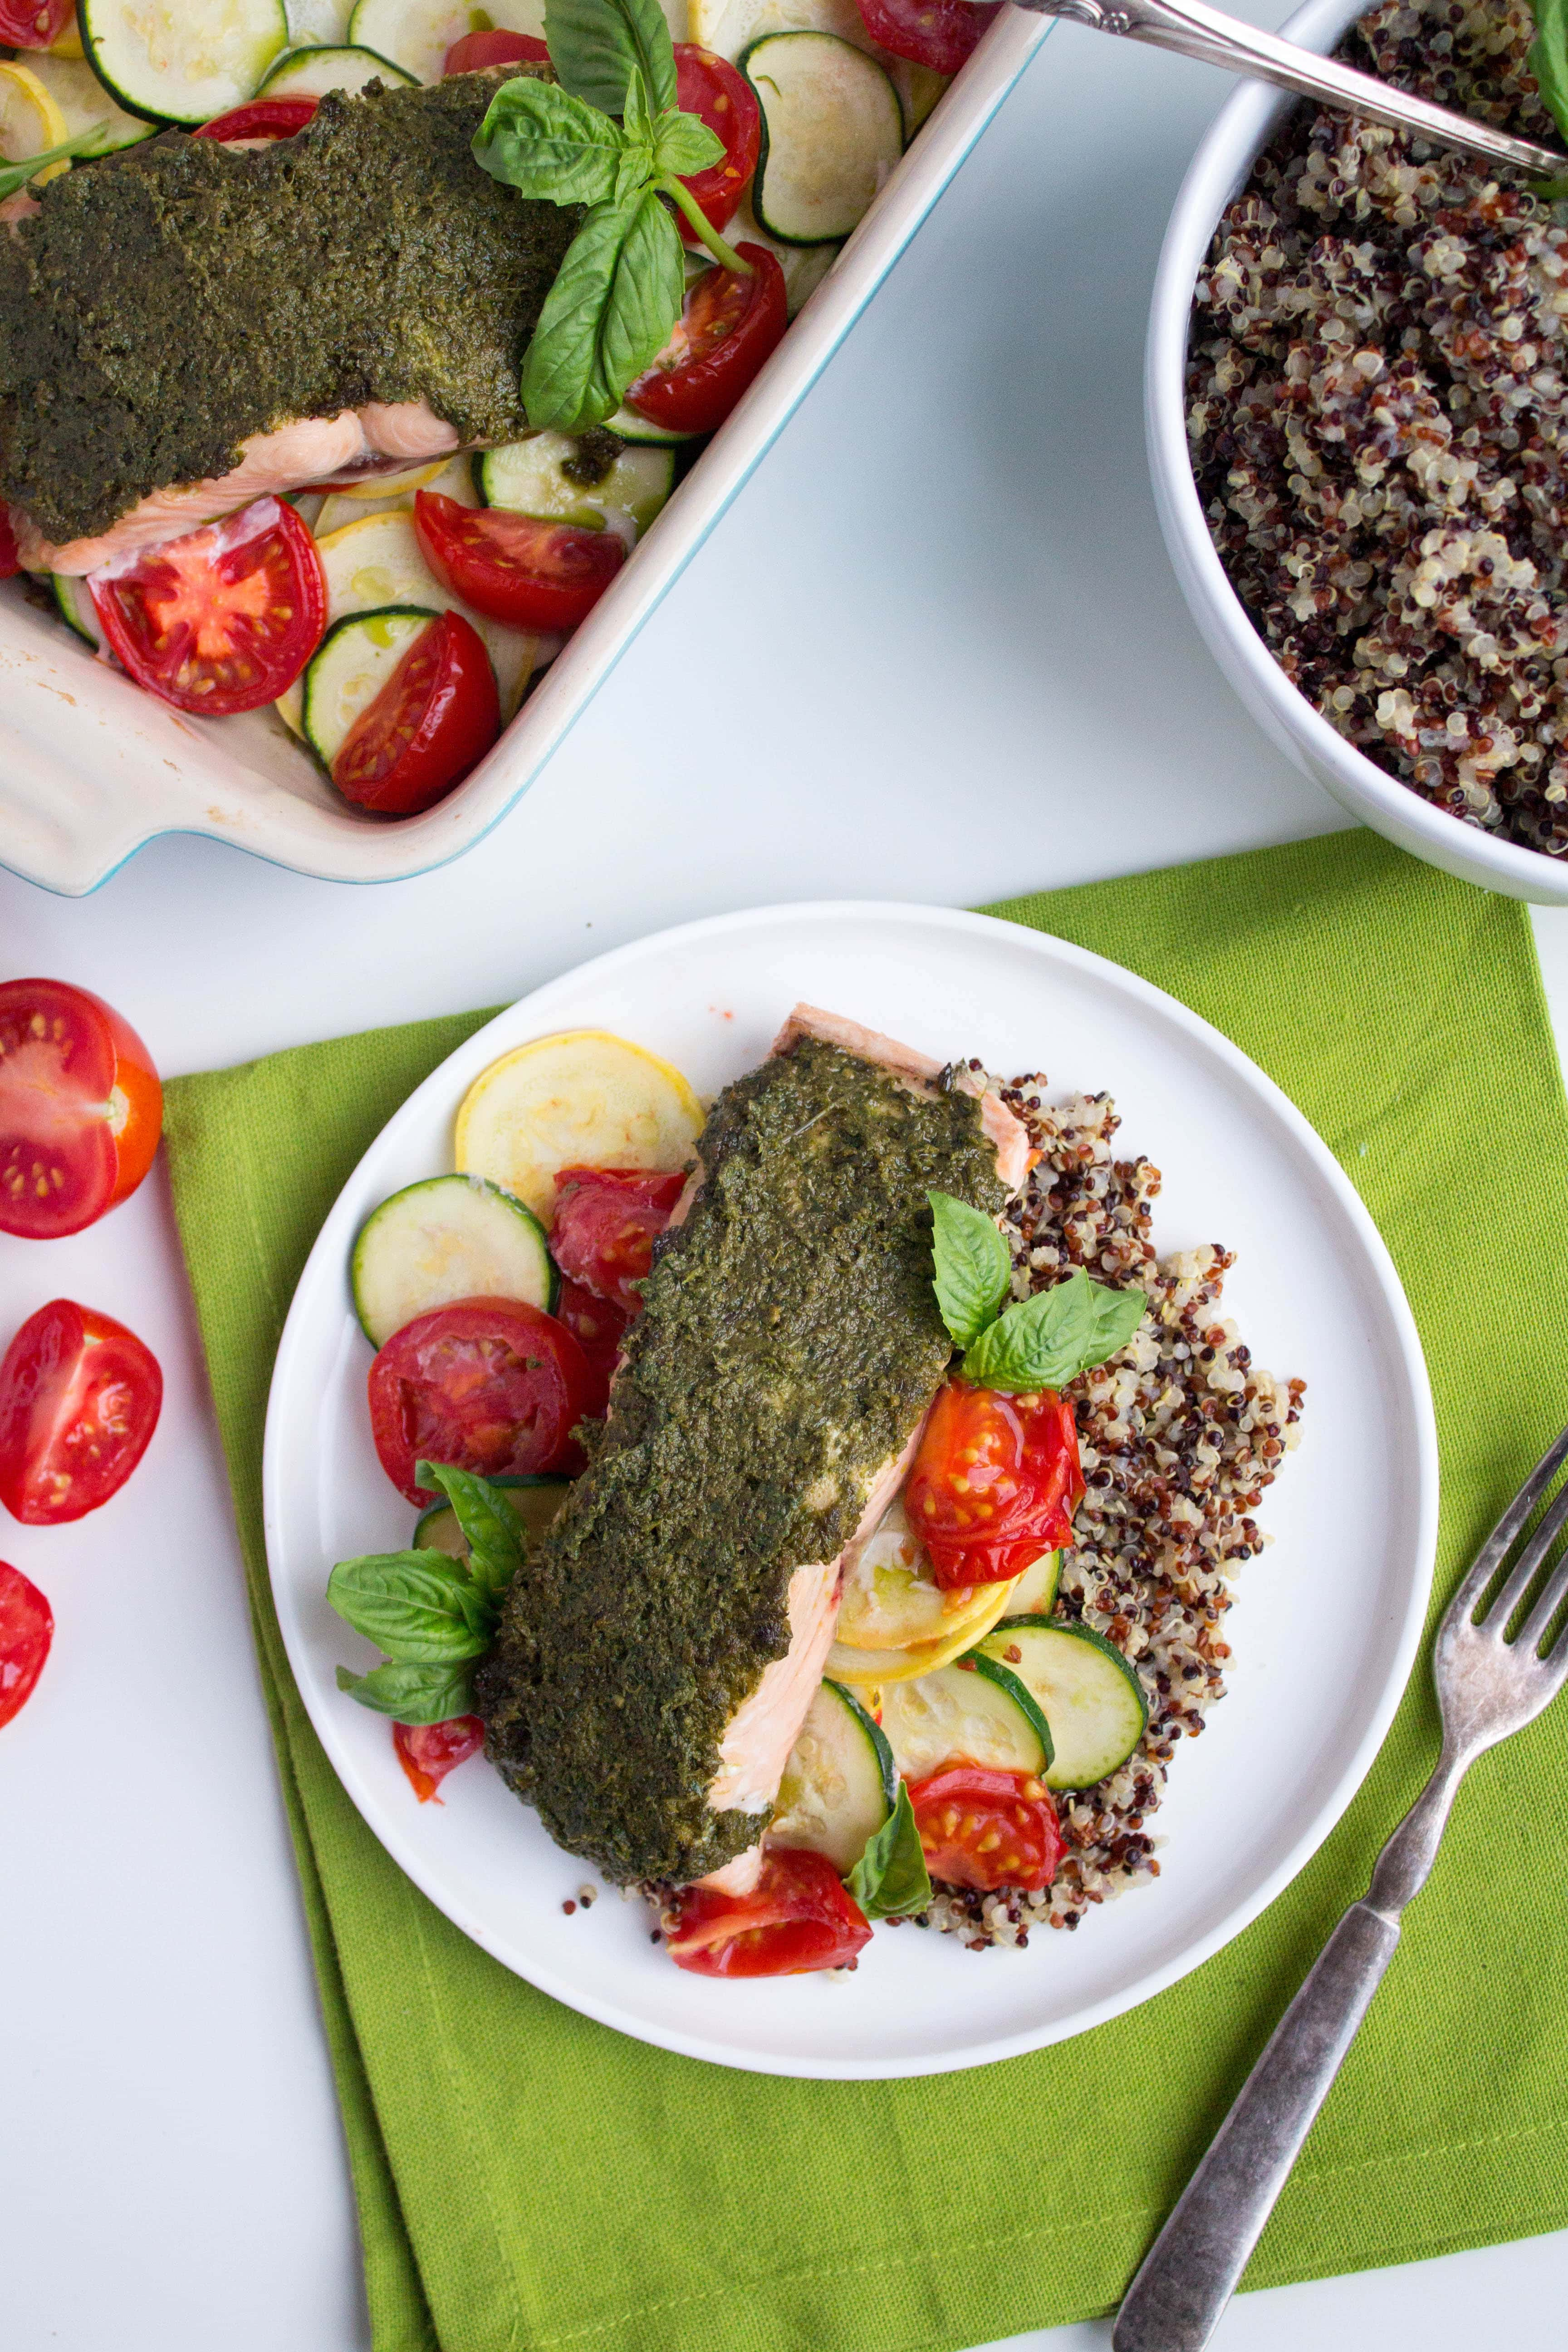 Pesto Baked Salmon with Veggies | Fast, Easy Dinner Recipe